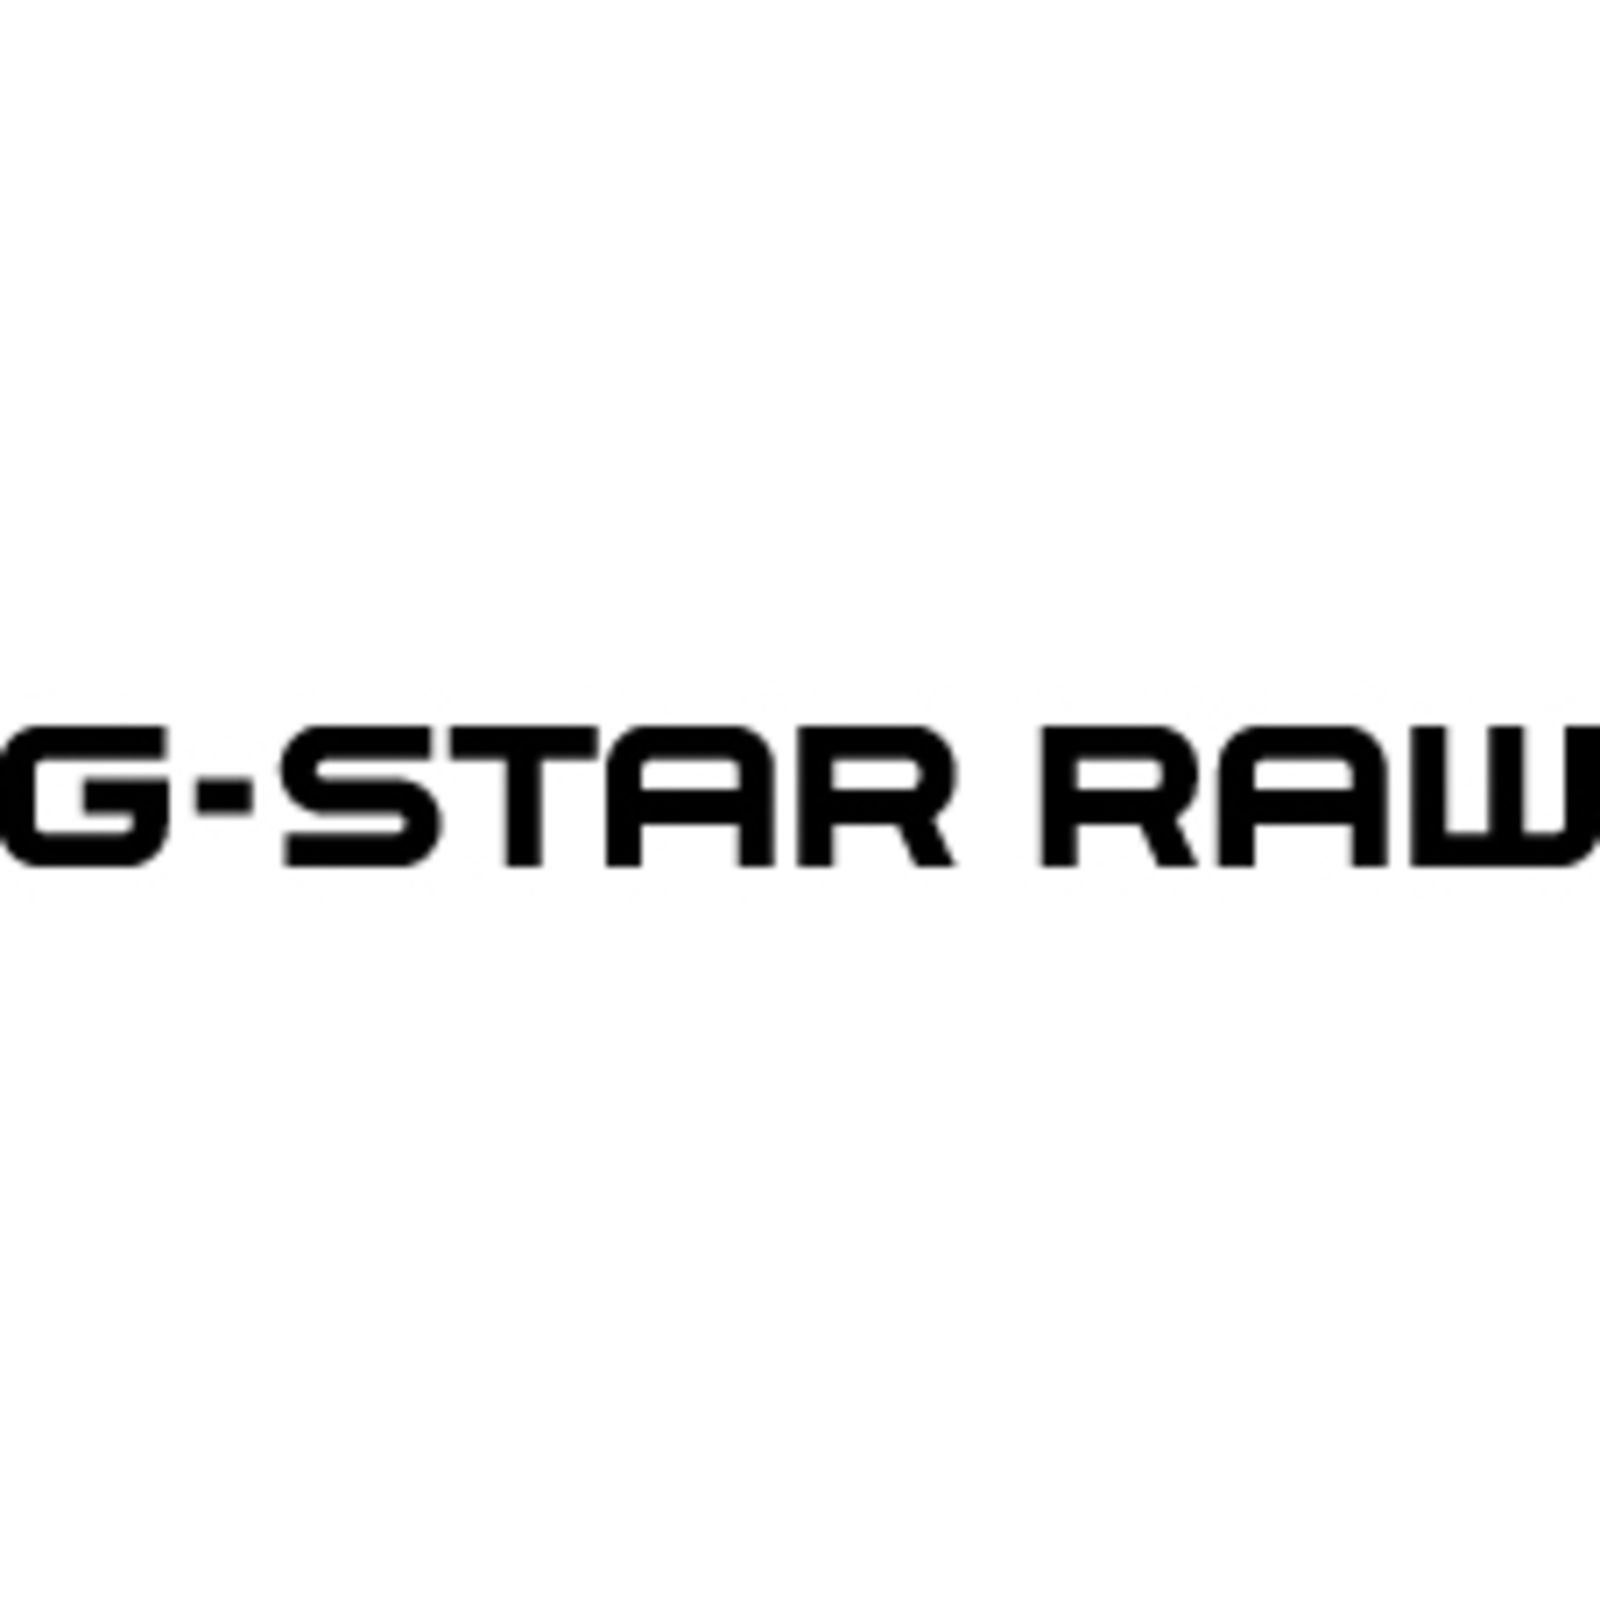 G-STAR RAW (Bild 1)